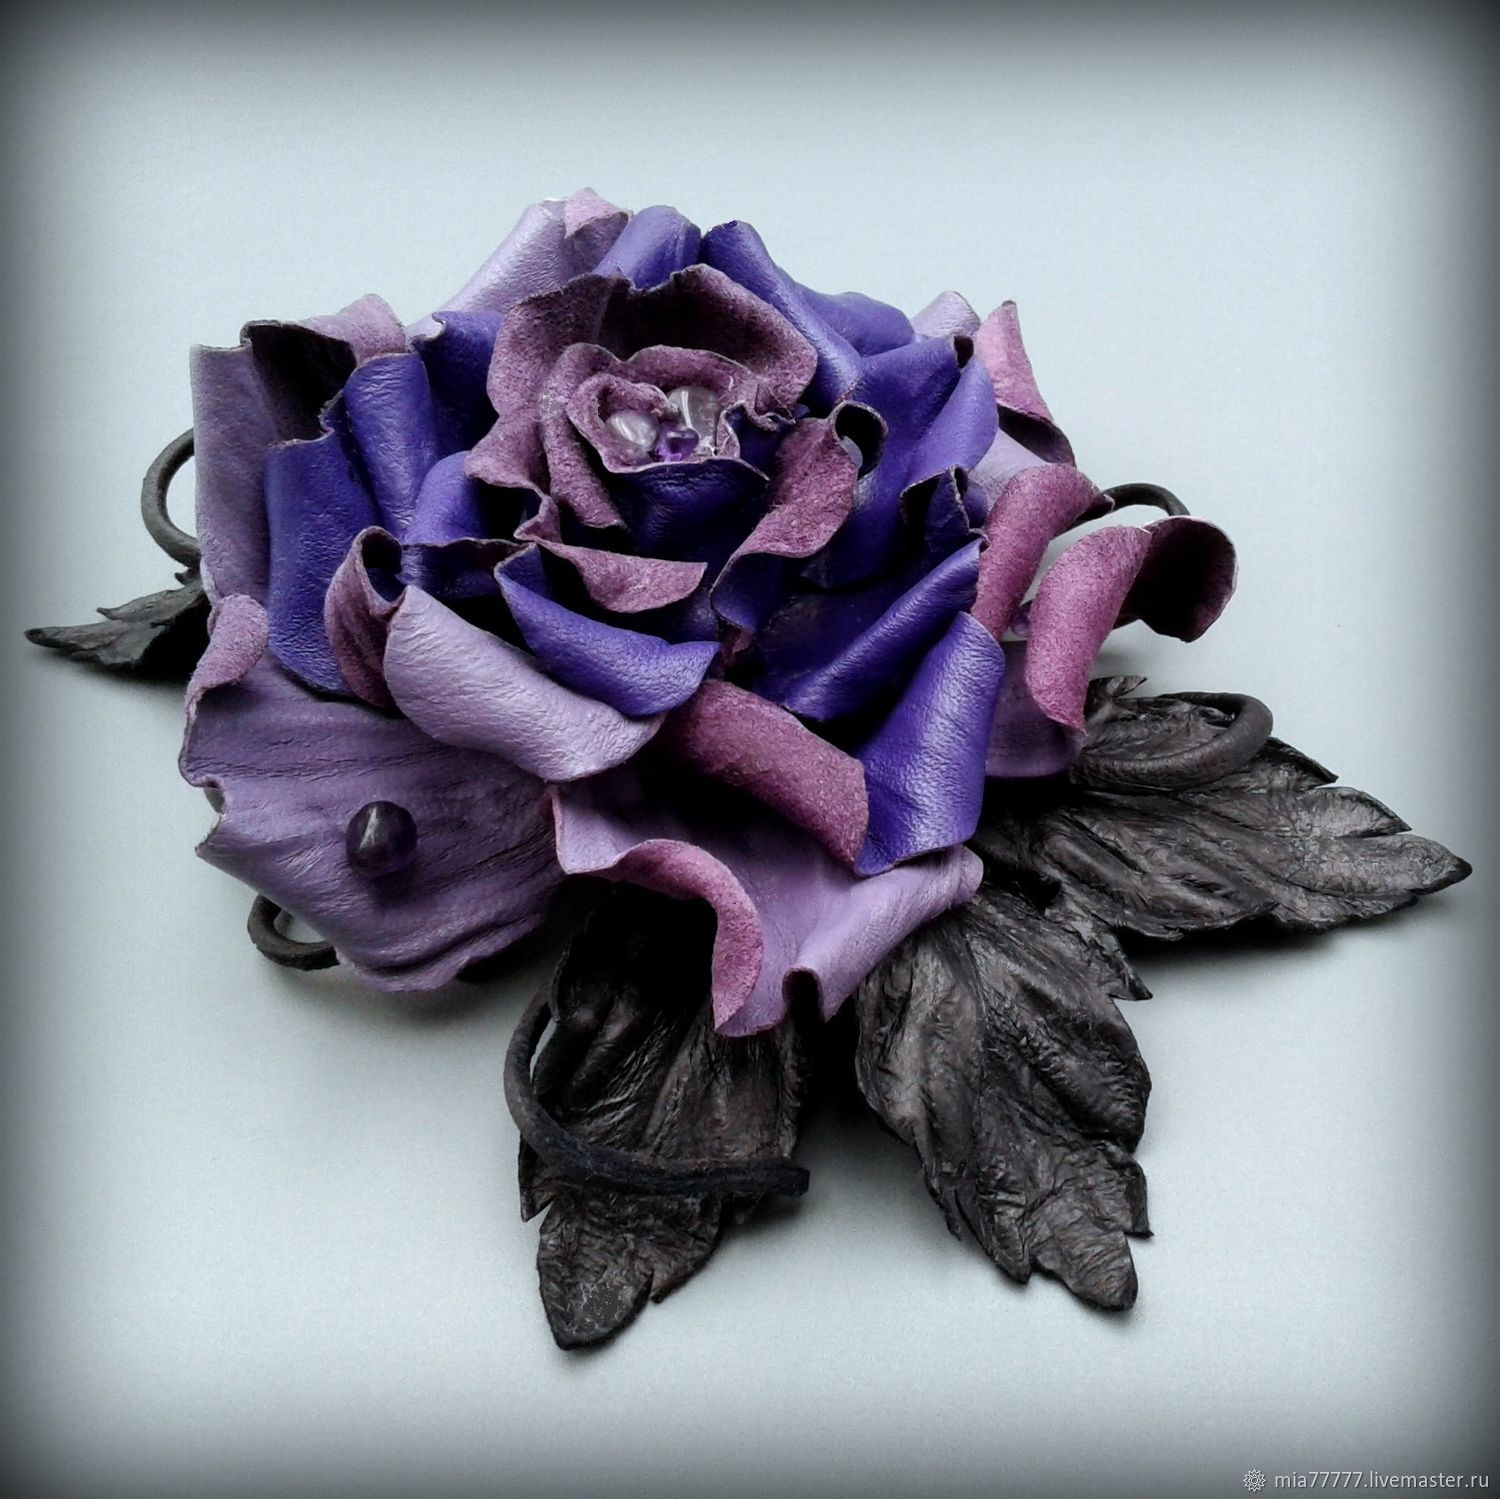 brooches: Brooch made of genuine leather and amethyst AMETHYST DEW, Brooches, Stavropol,  Фото №1